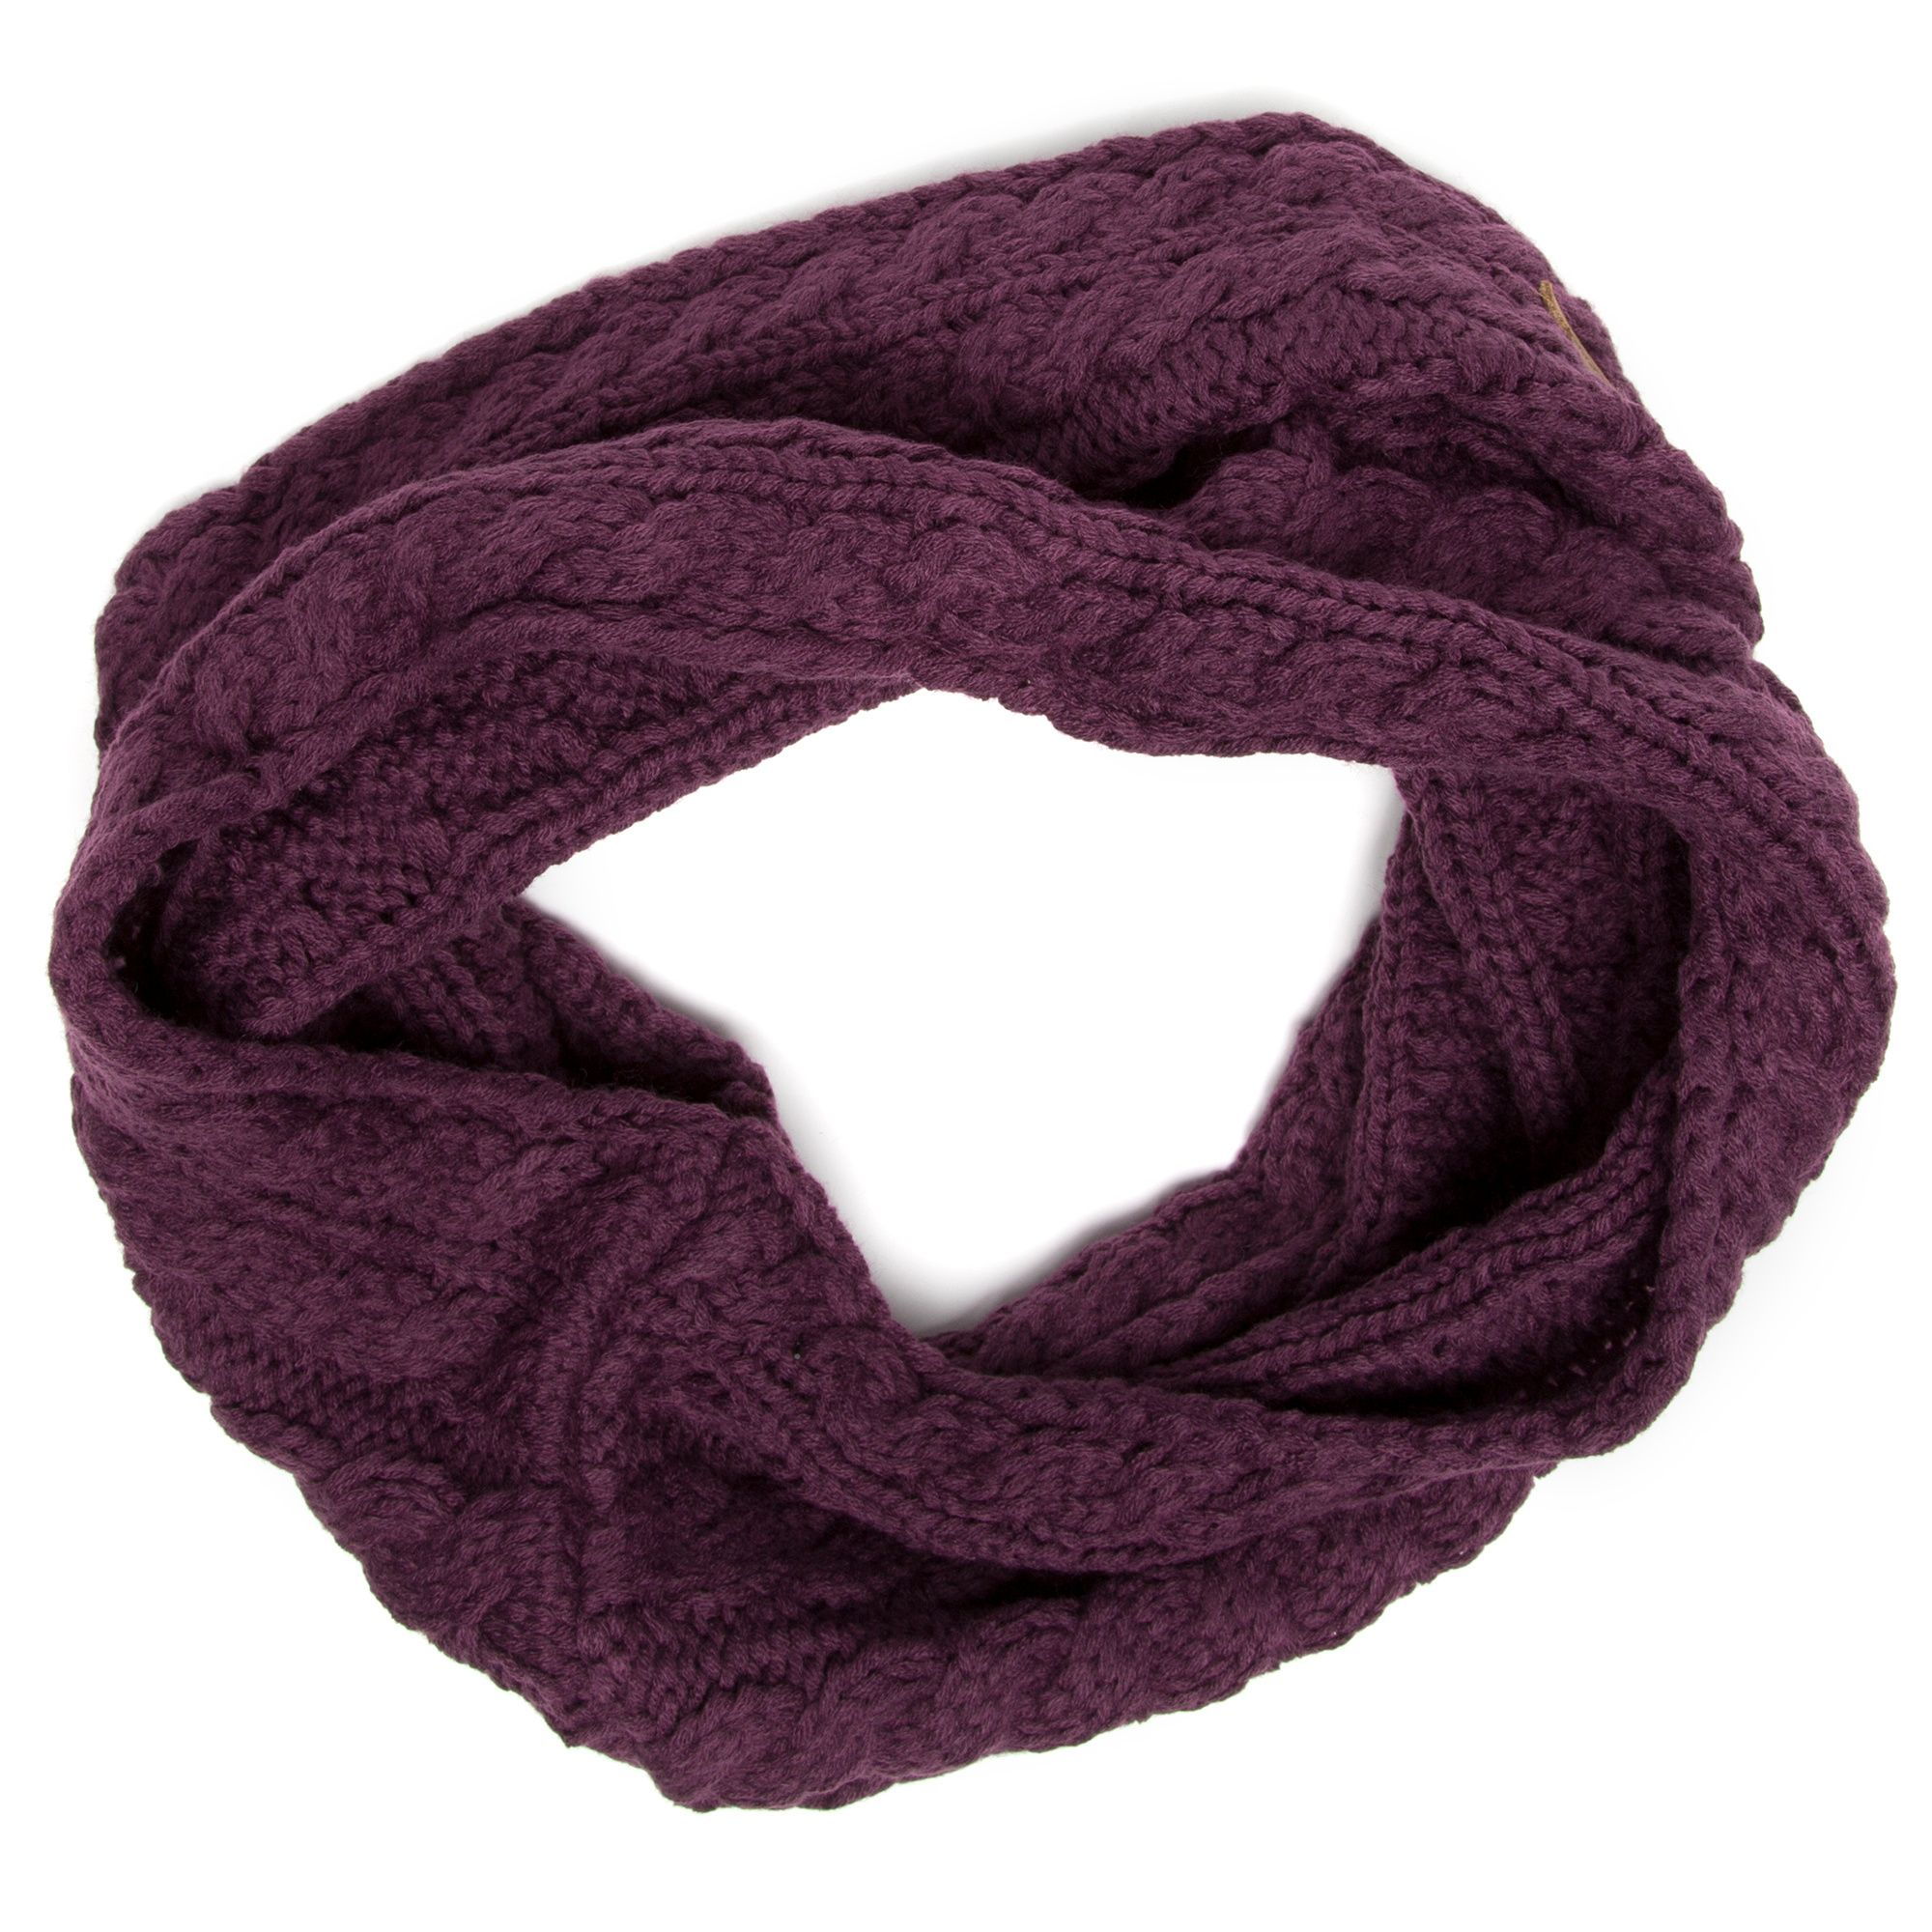 Brookhaven Marston Snood